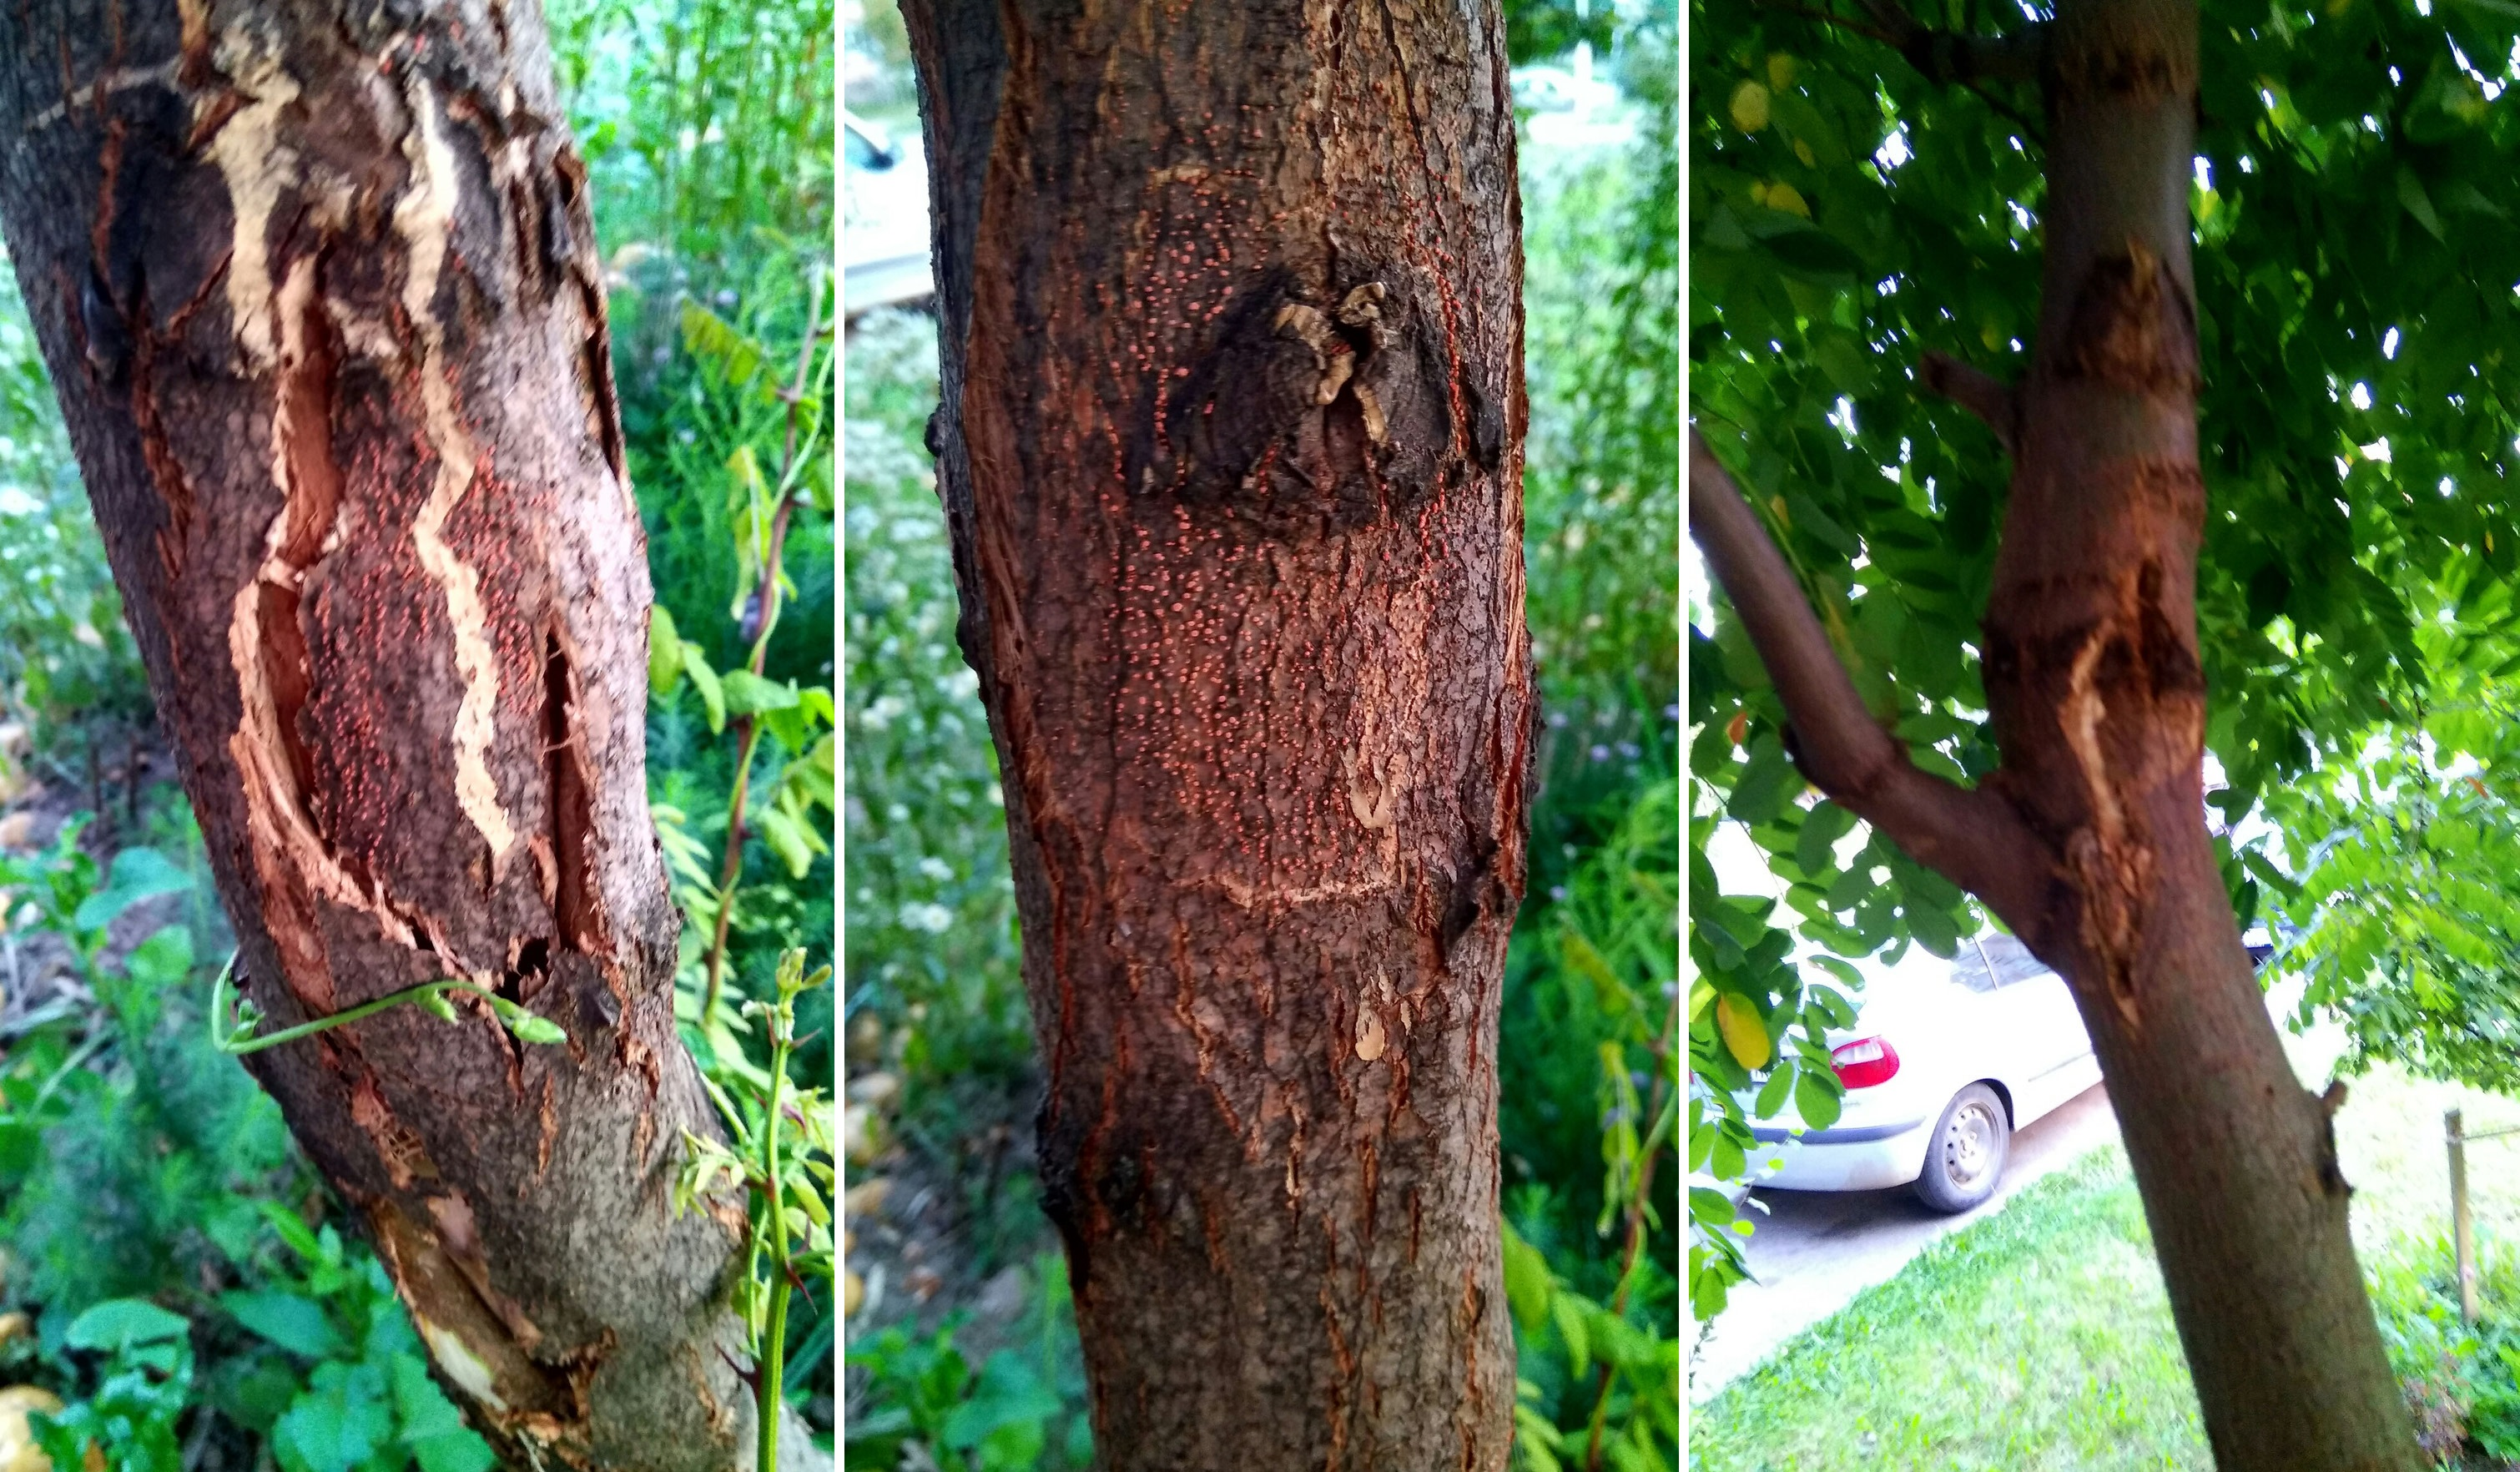 chestnut bark disease Chestnut bark disease download rating 3 and suggested read by user 493 online last modified september 21, 2018, 10:44 am find as text or pdf and doc document for the chestnut bark disease.